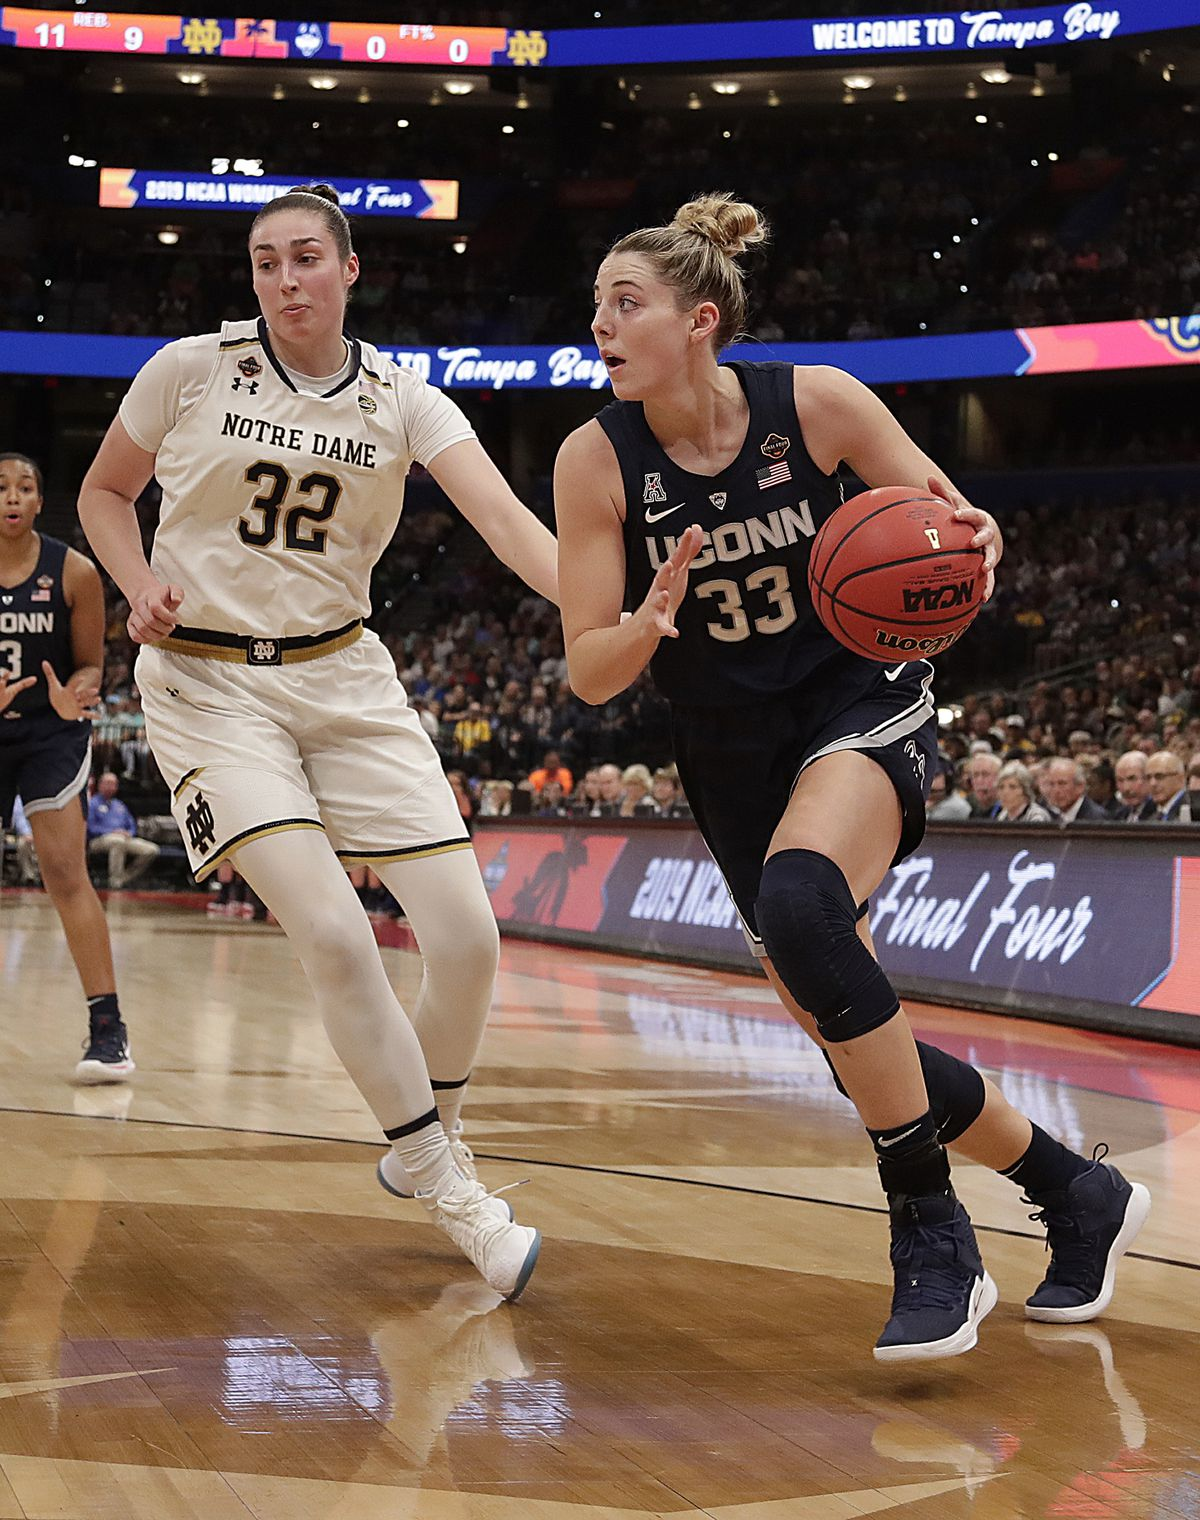 Connecticut guard Katie Lou Samuelson (33) looks to pass as Notre Dame forward Jessica Shepard (32) defends during the first half of a women's Final Four NCAA college basketball semifinal tournament game, Friday, April 5, 2019, in Tampa, Fla. | John Raoux